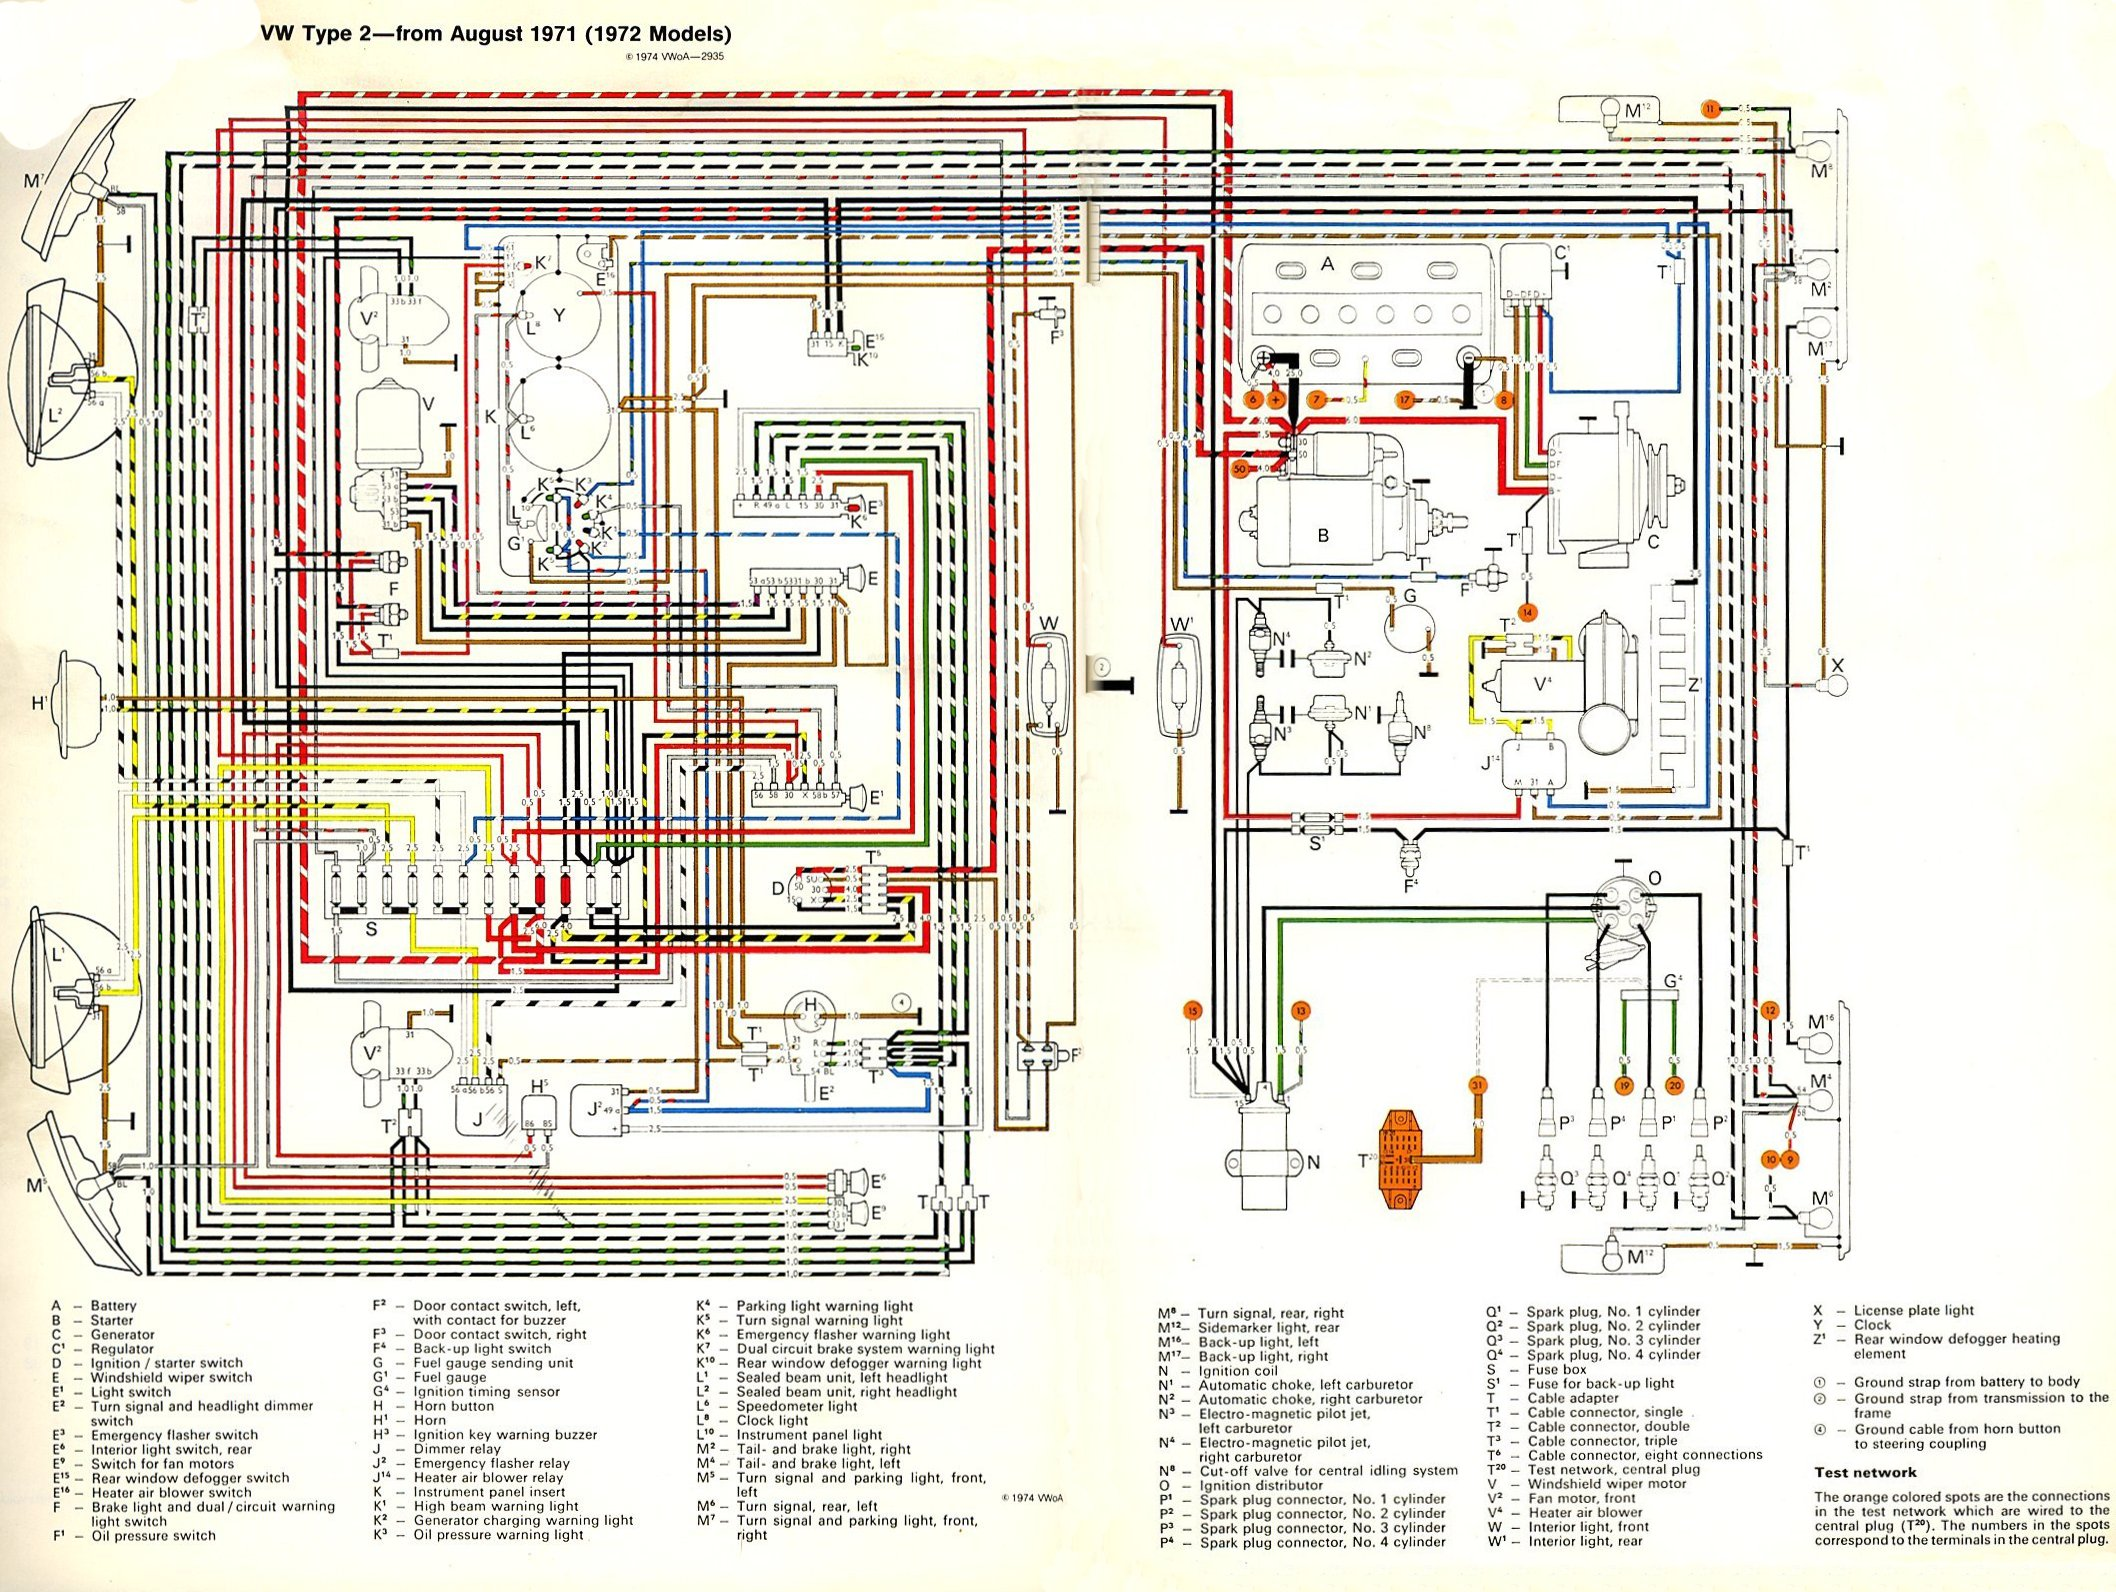 bus_1972_wiring bus_1972_wiring jpg (2116�1592) wire pinterest kombi camper vw t4 fuse box wiring diagram at readyjetset.co